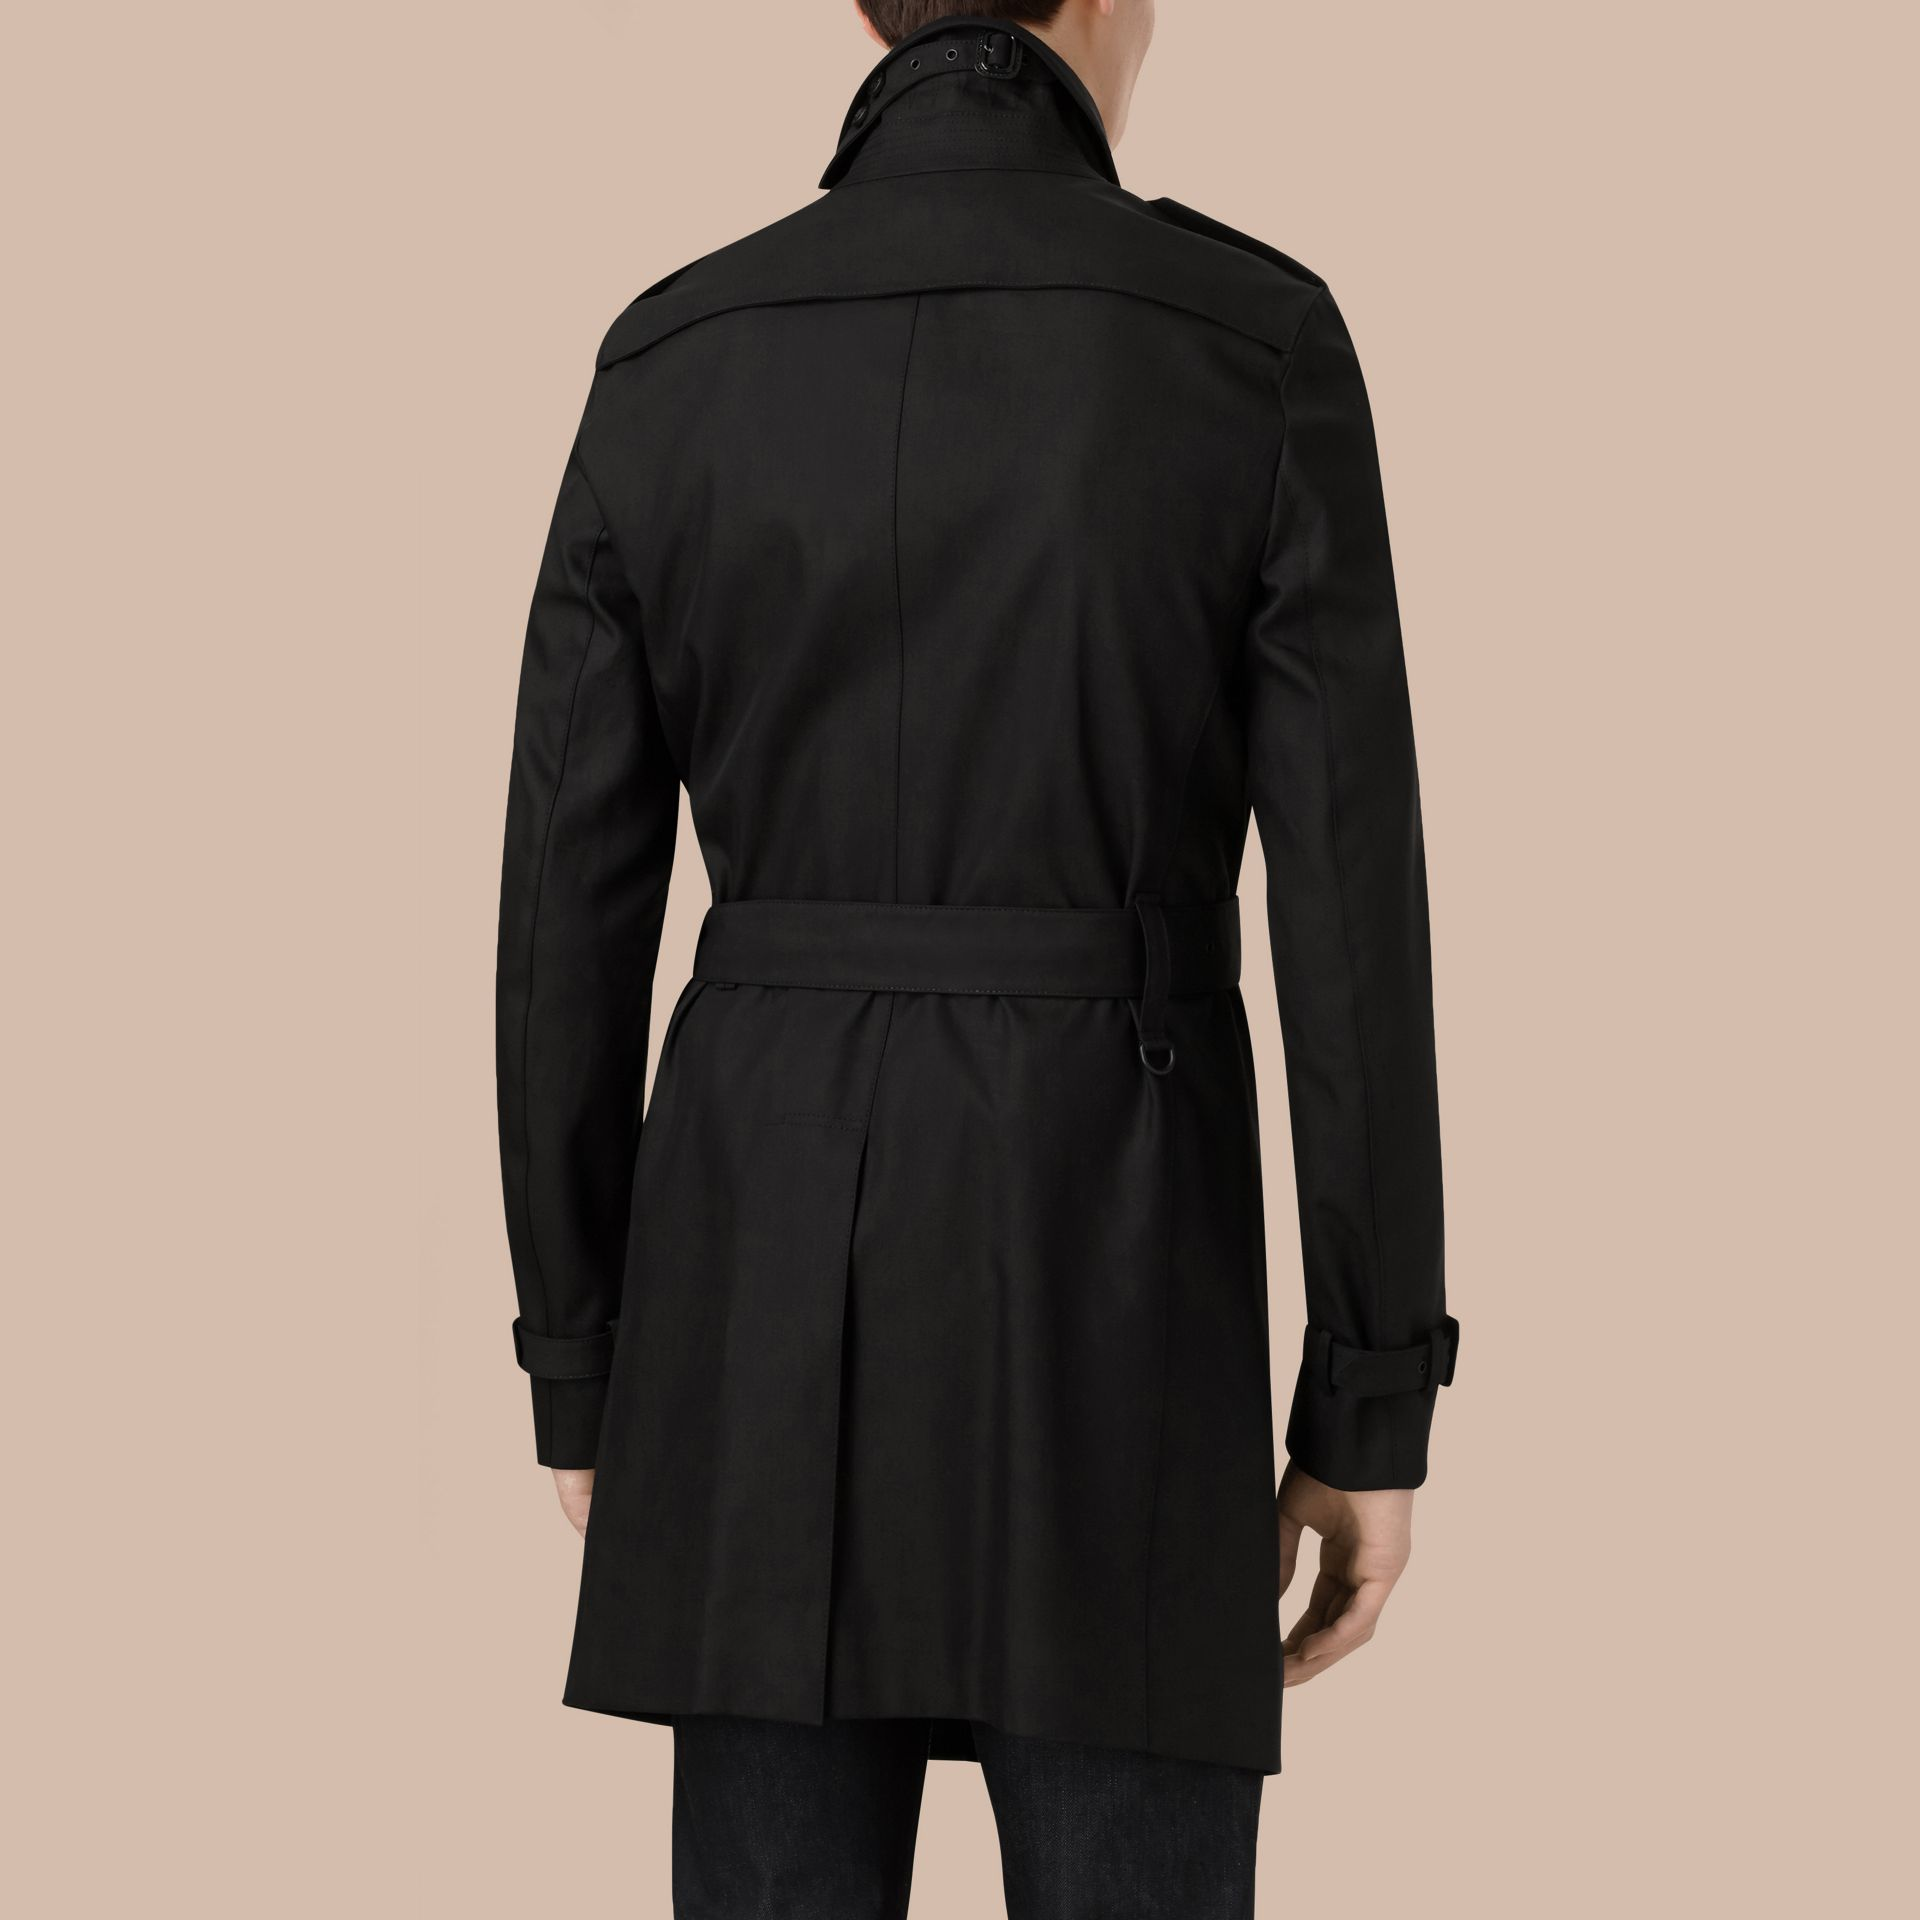 Noir Trench-coat en gabardine de coton - photo de la galerie 3